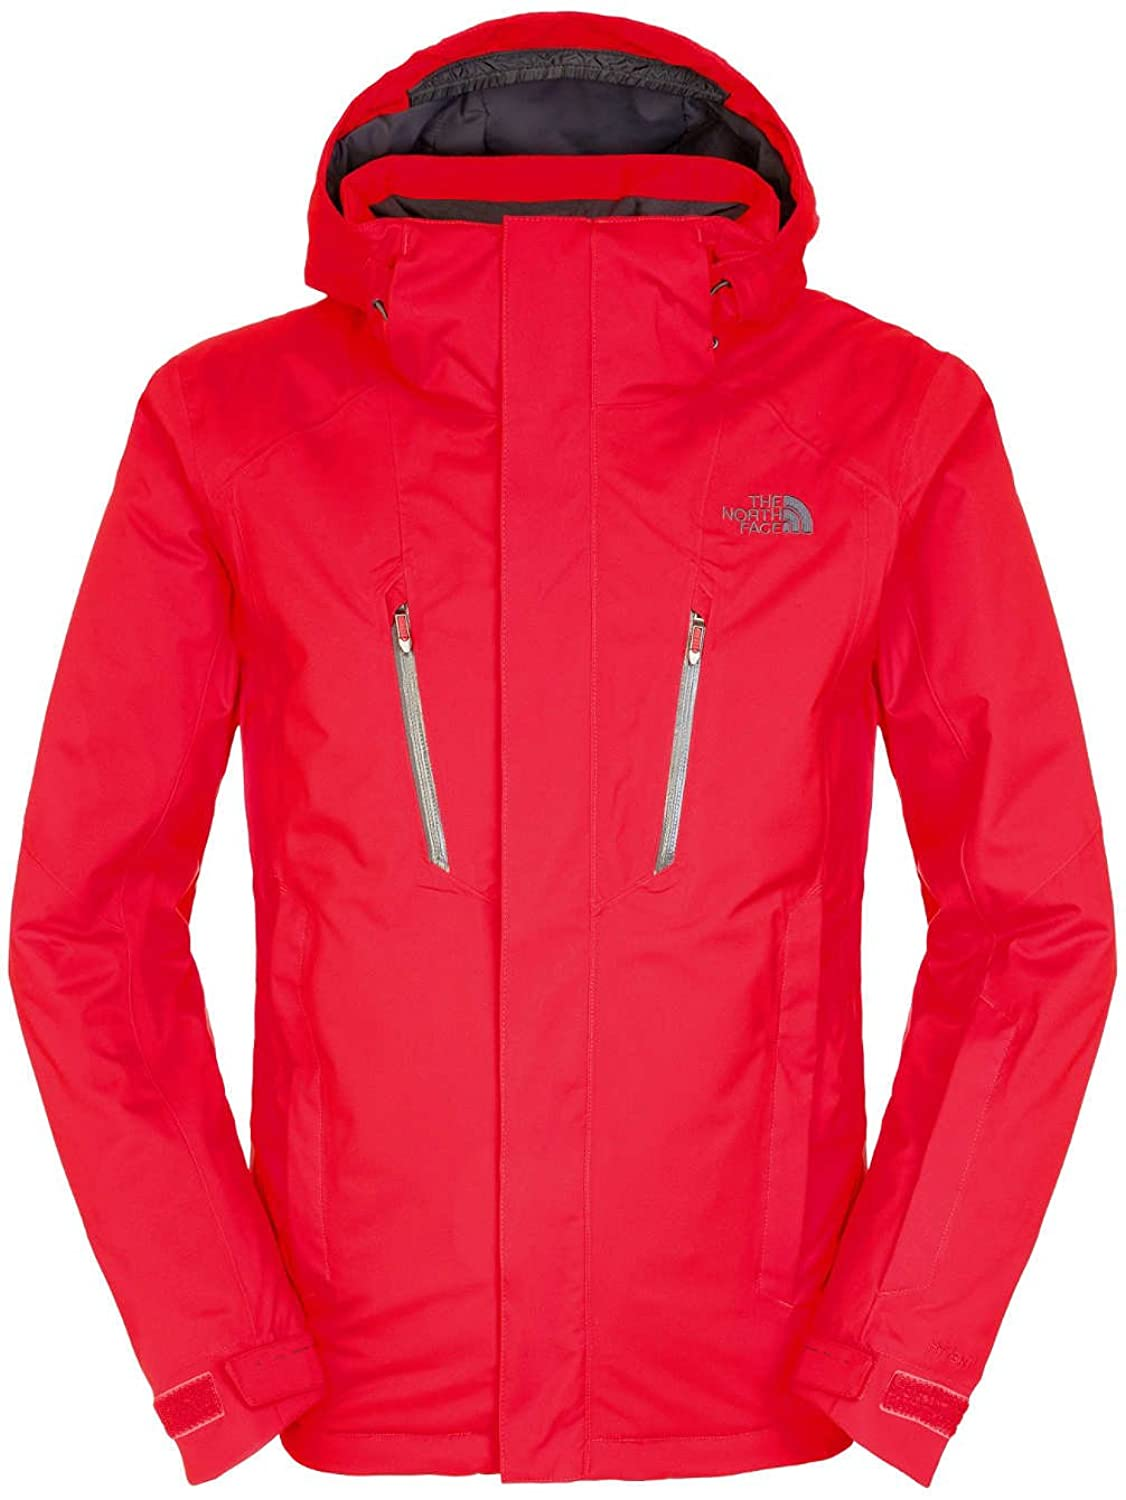 The North Face Herren Skijacke Jeppeson C423 jetzt bestellen